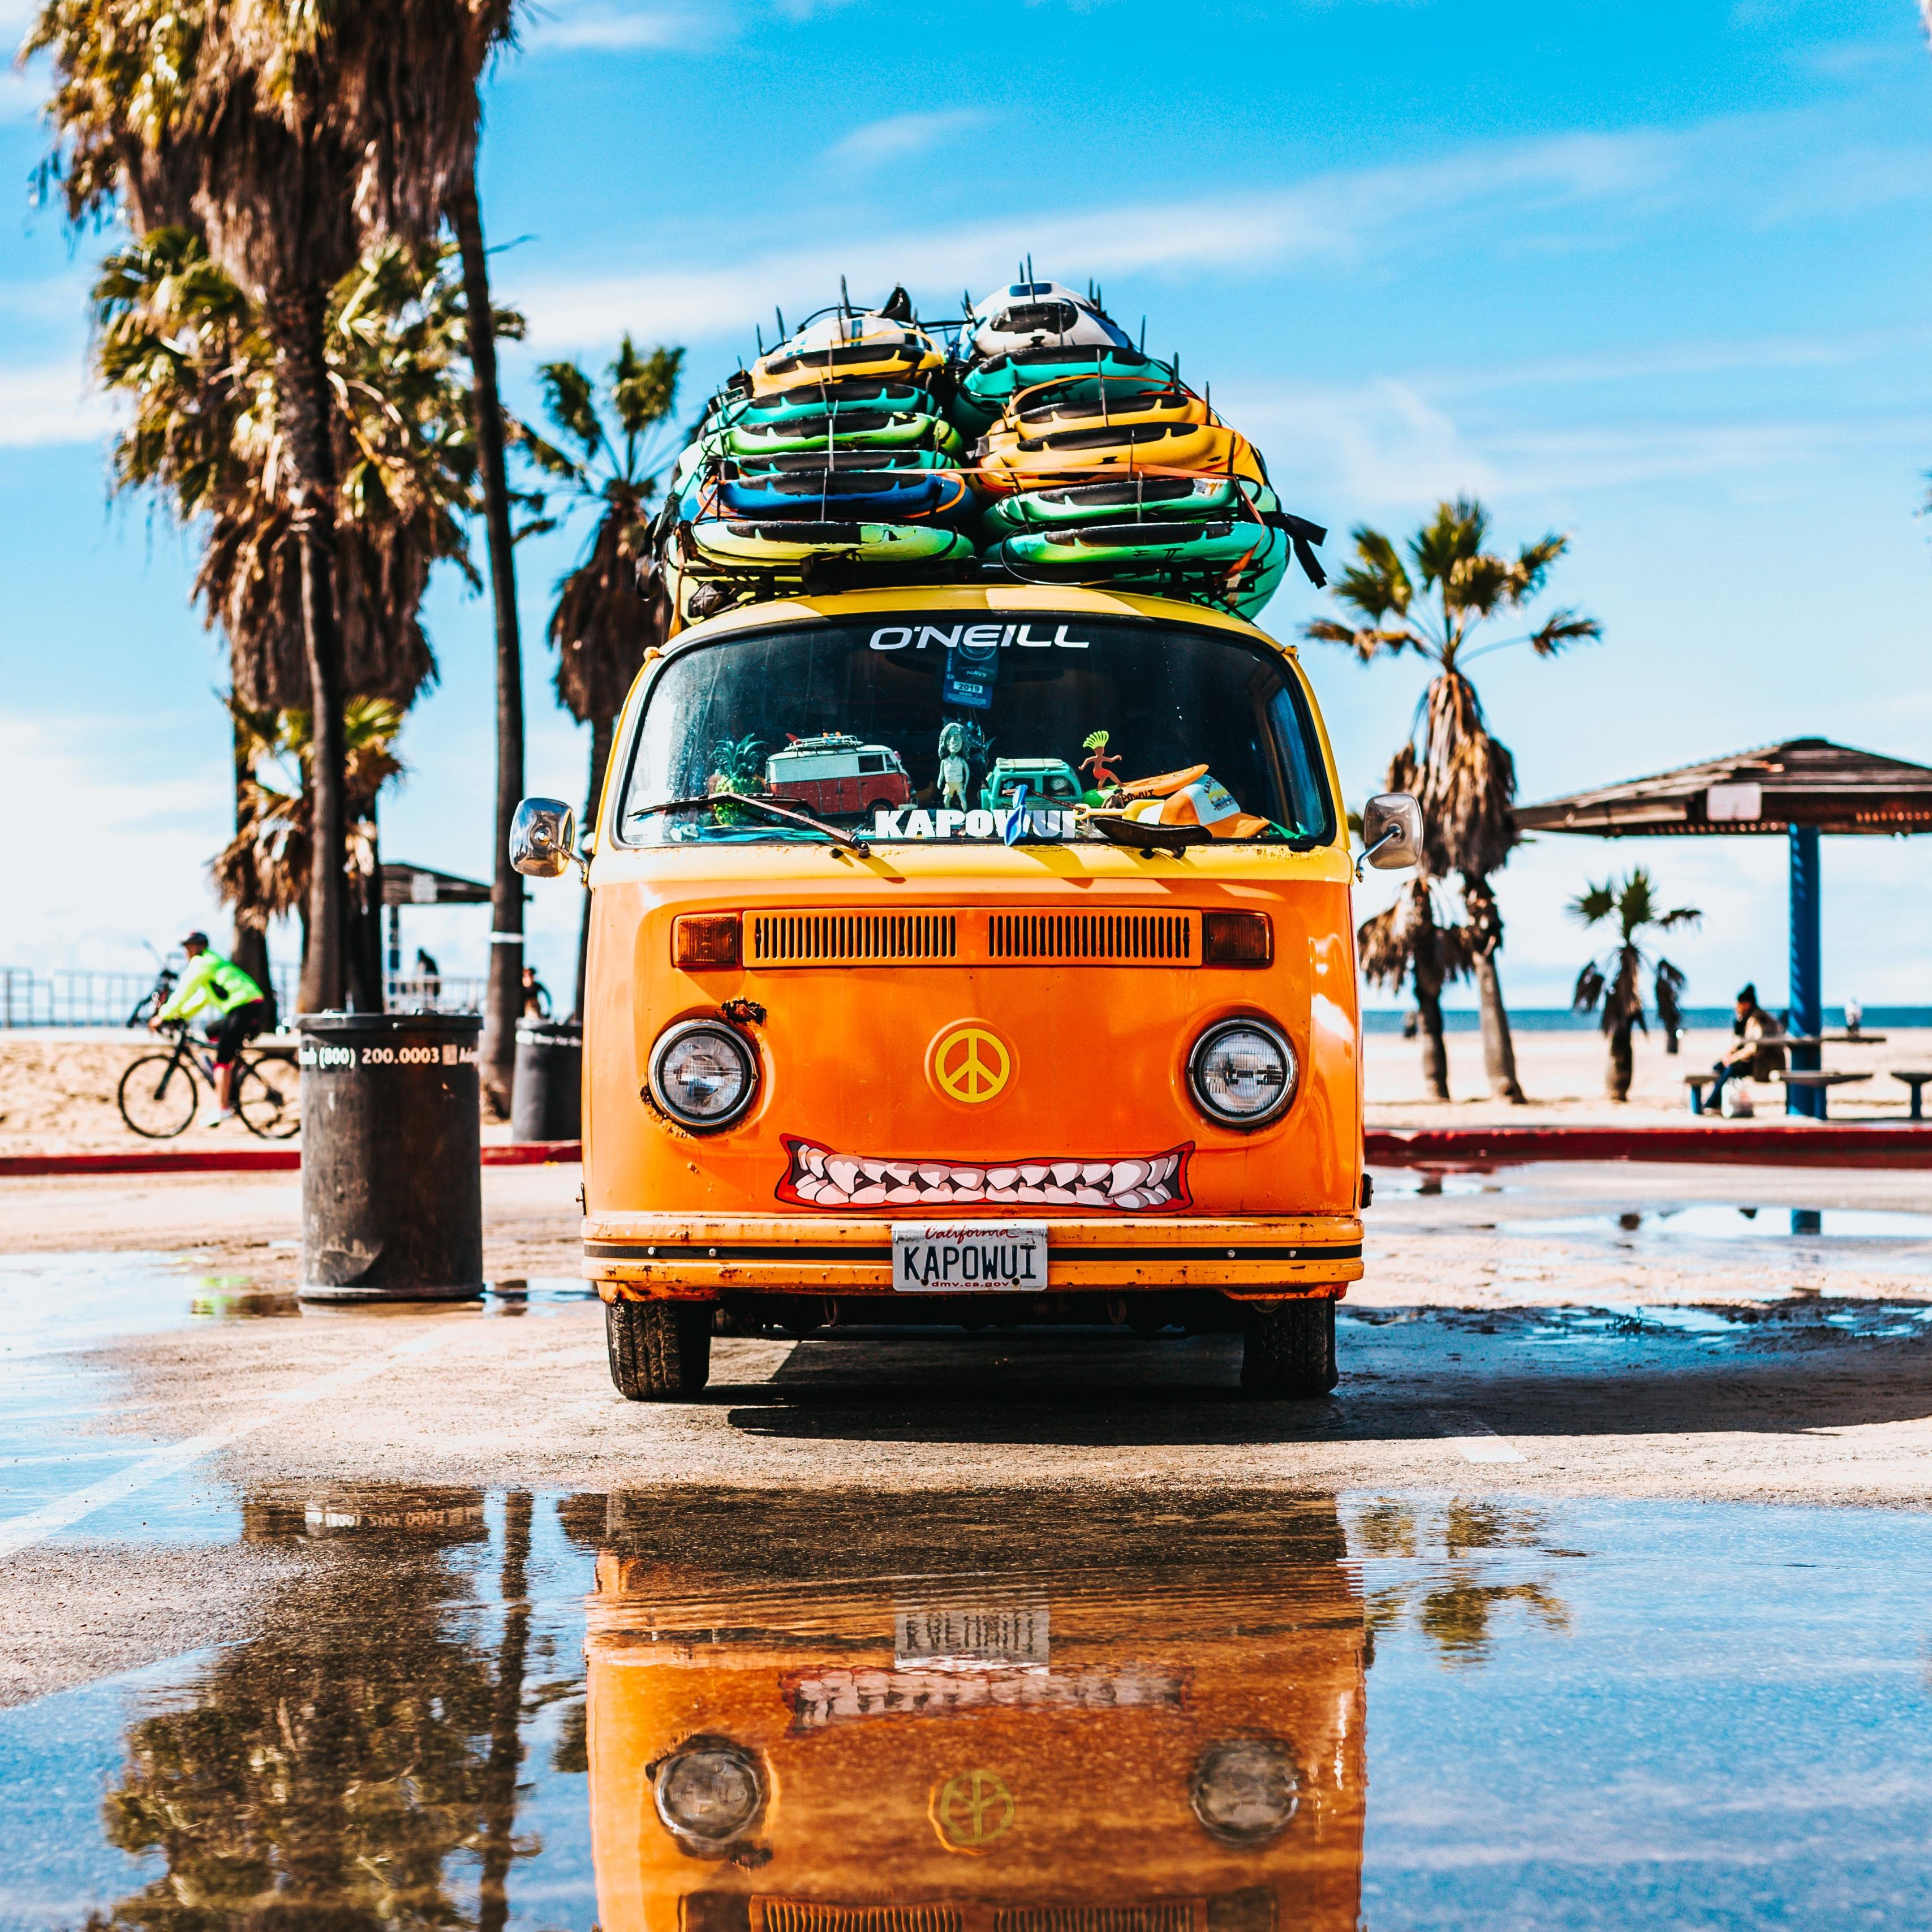 Download wallpaper 3415x3415 bus, surfing, summer ipad pro 12.9 ...